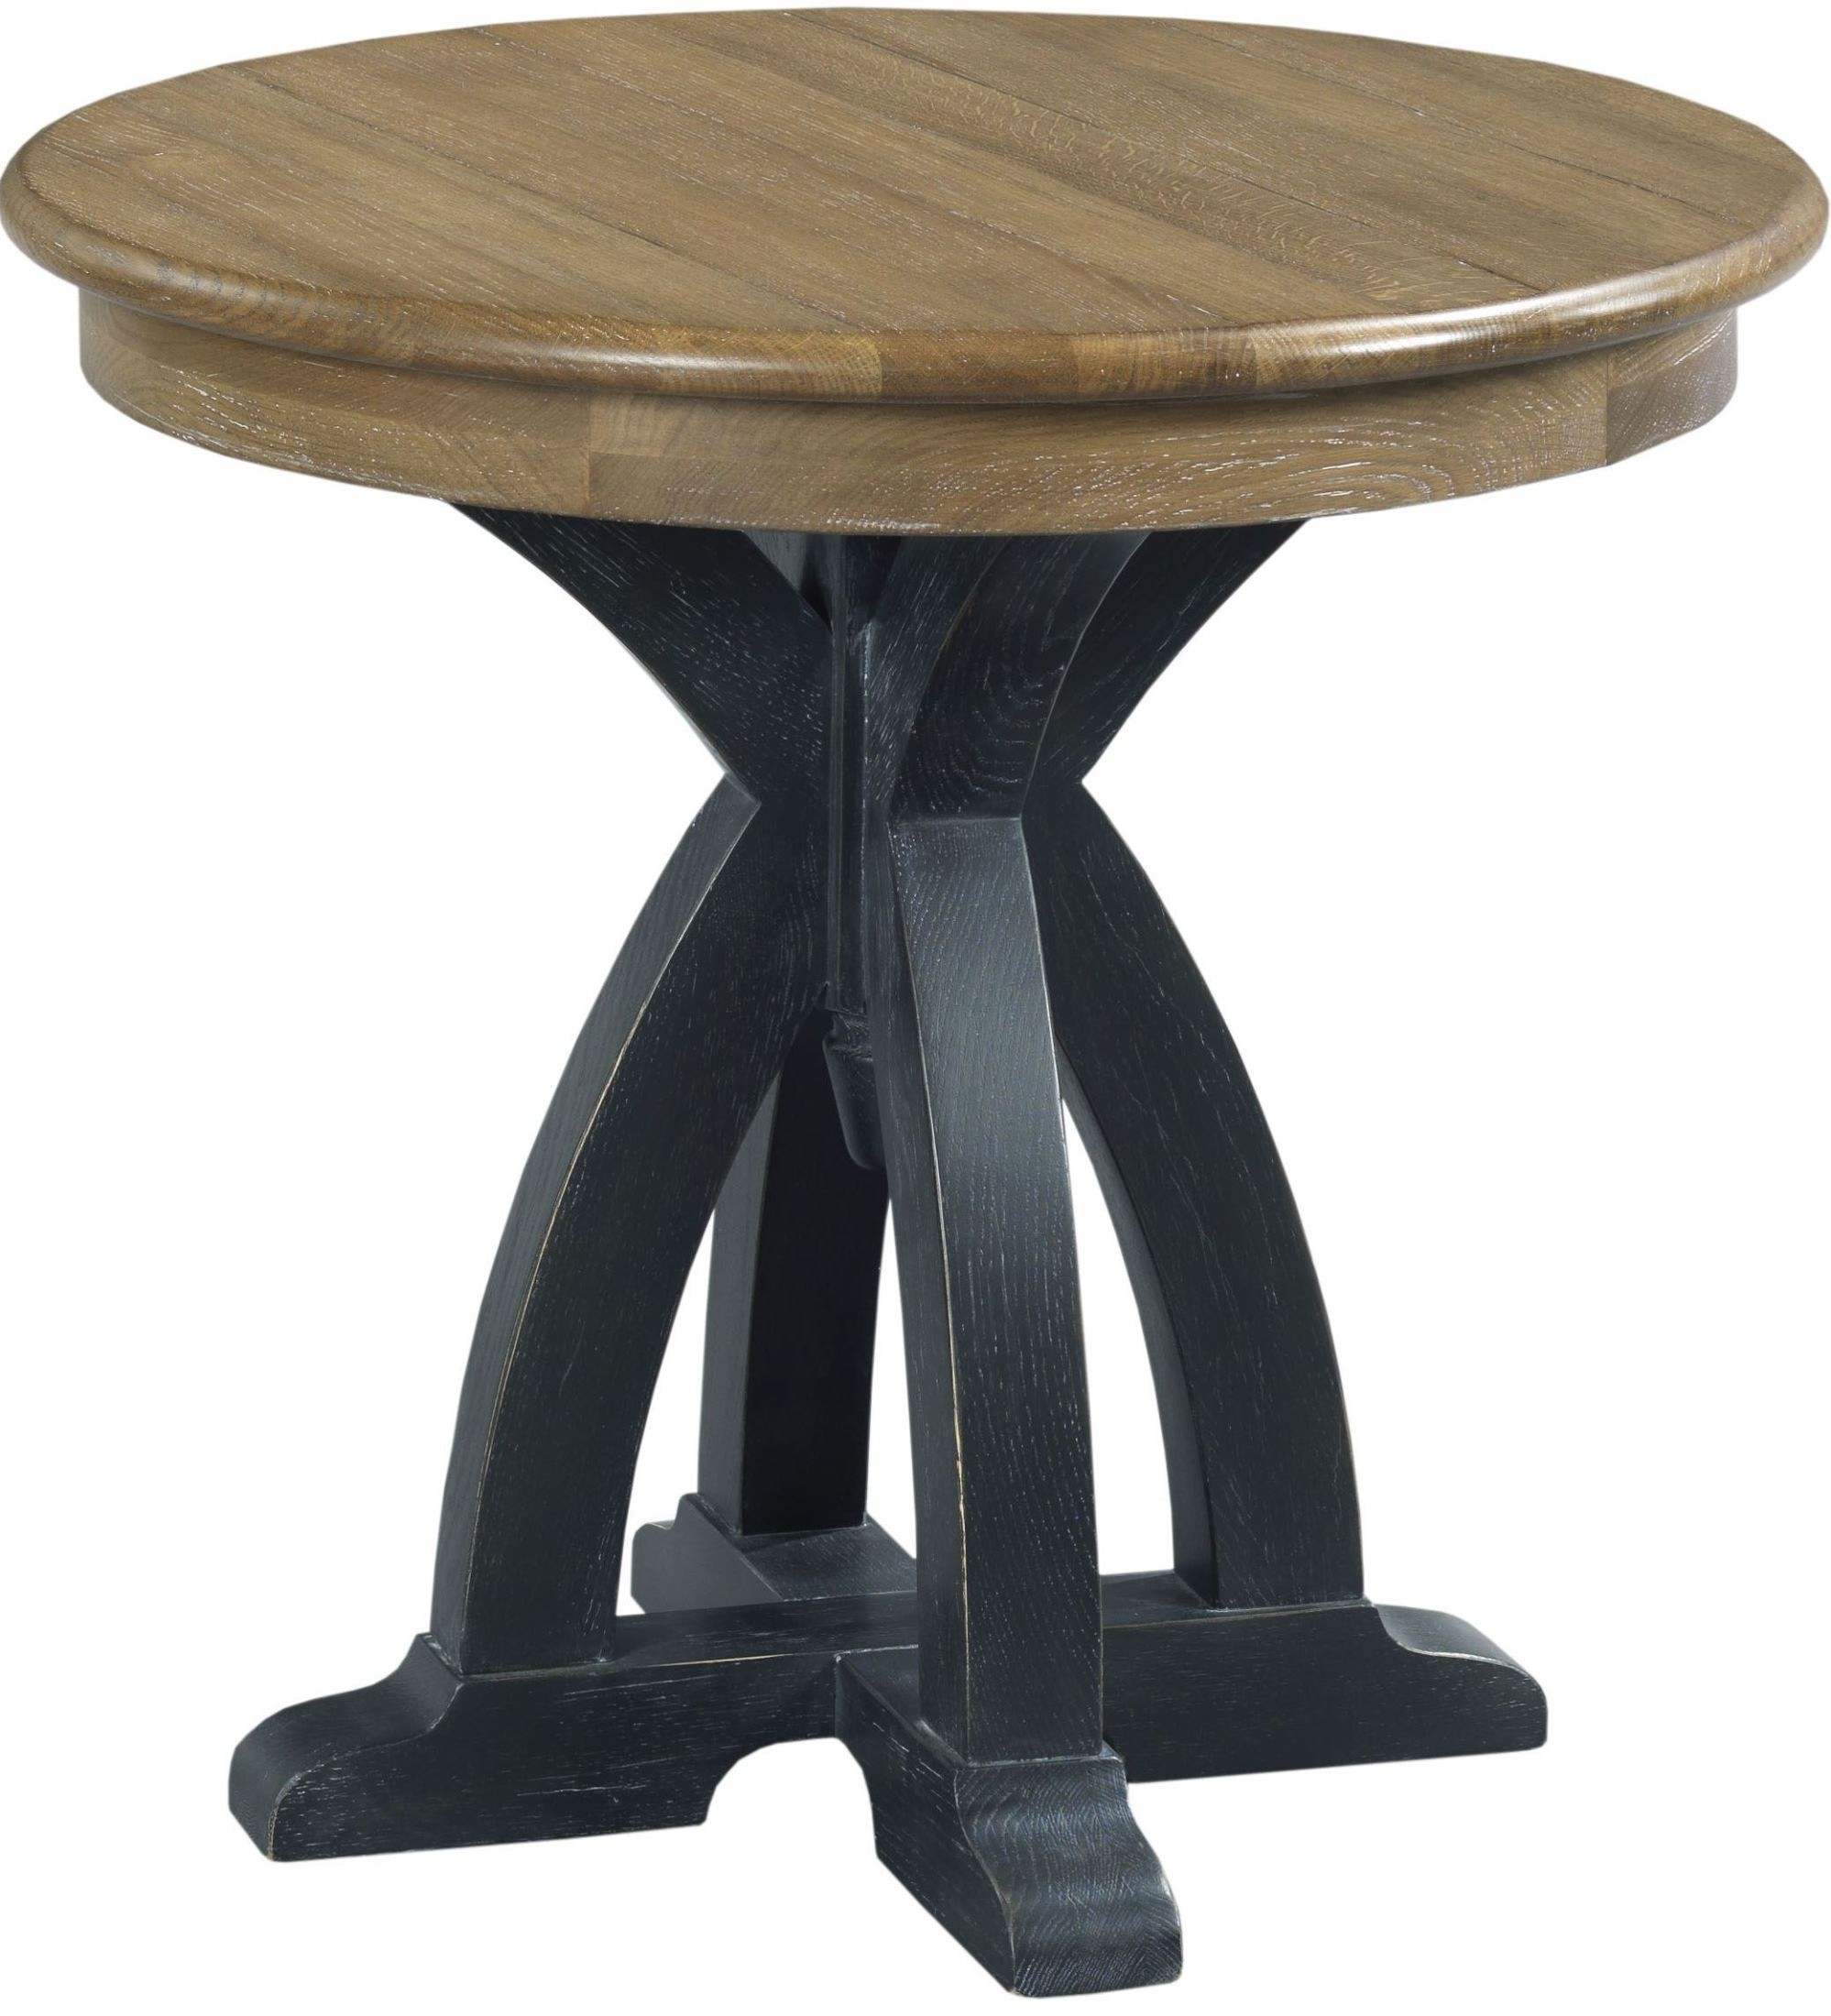 Stone Ridge Round Wood End Table From Kincaid 72 021